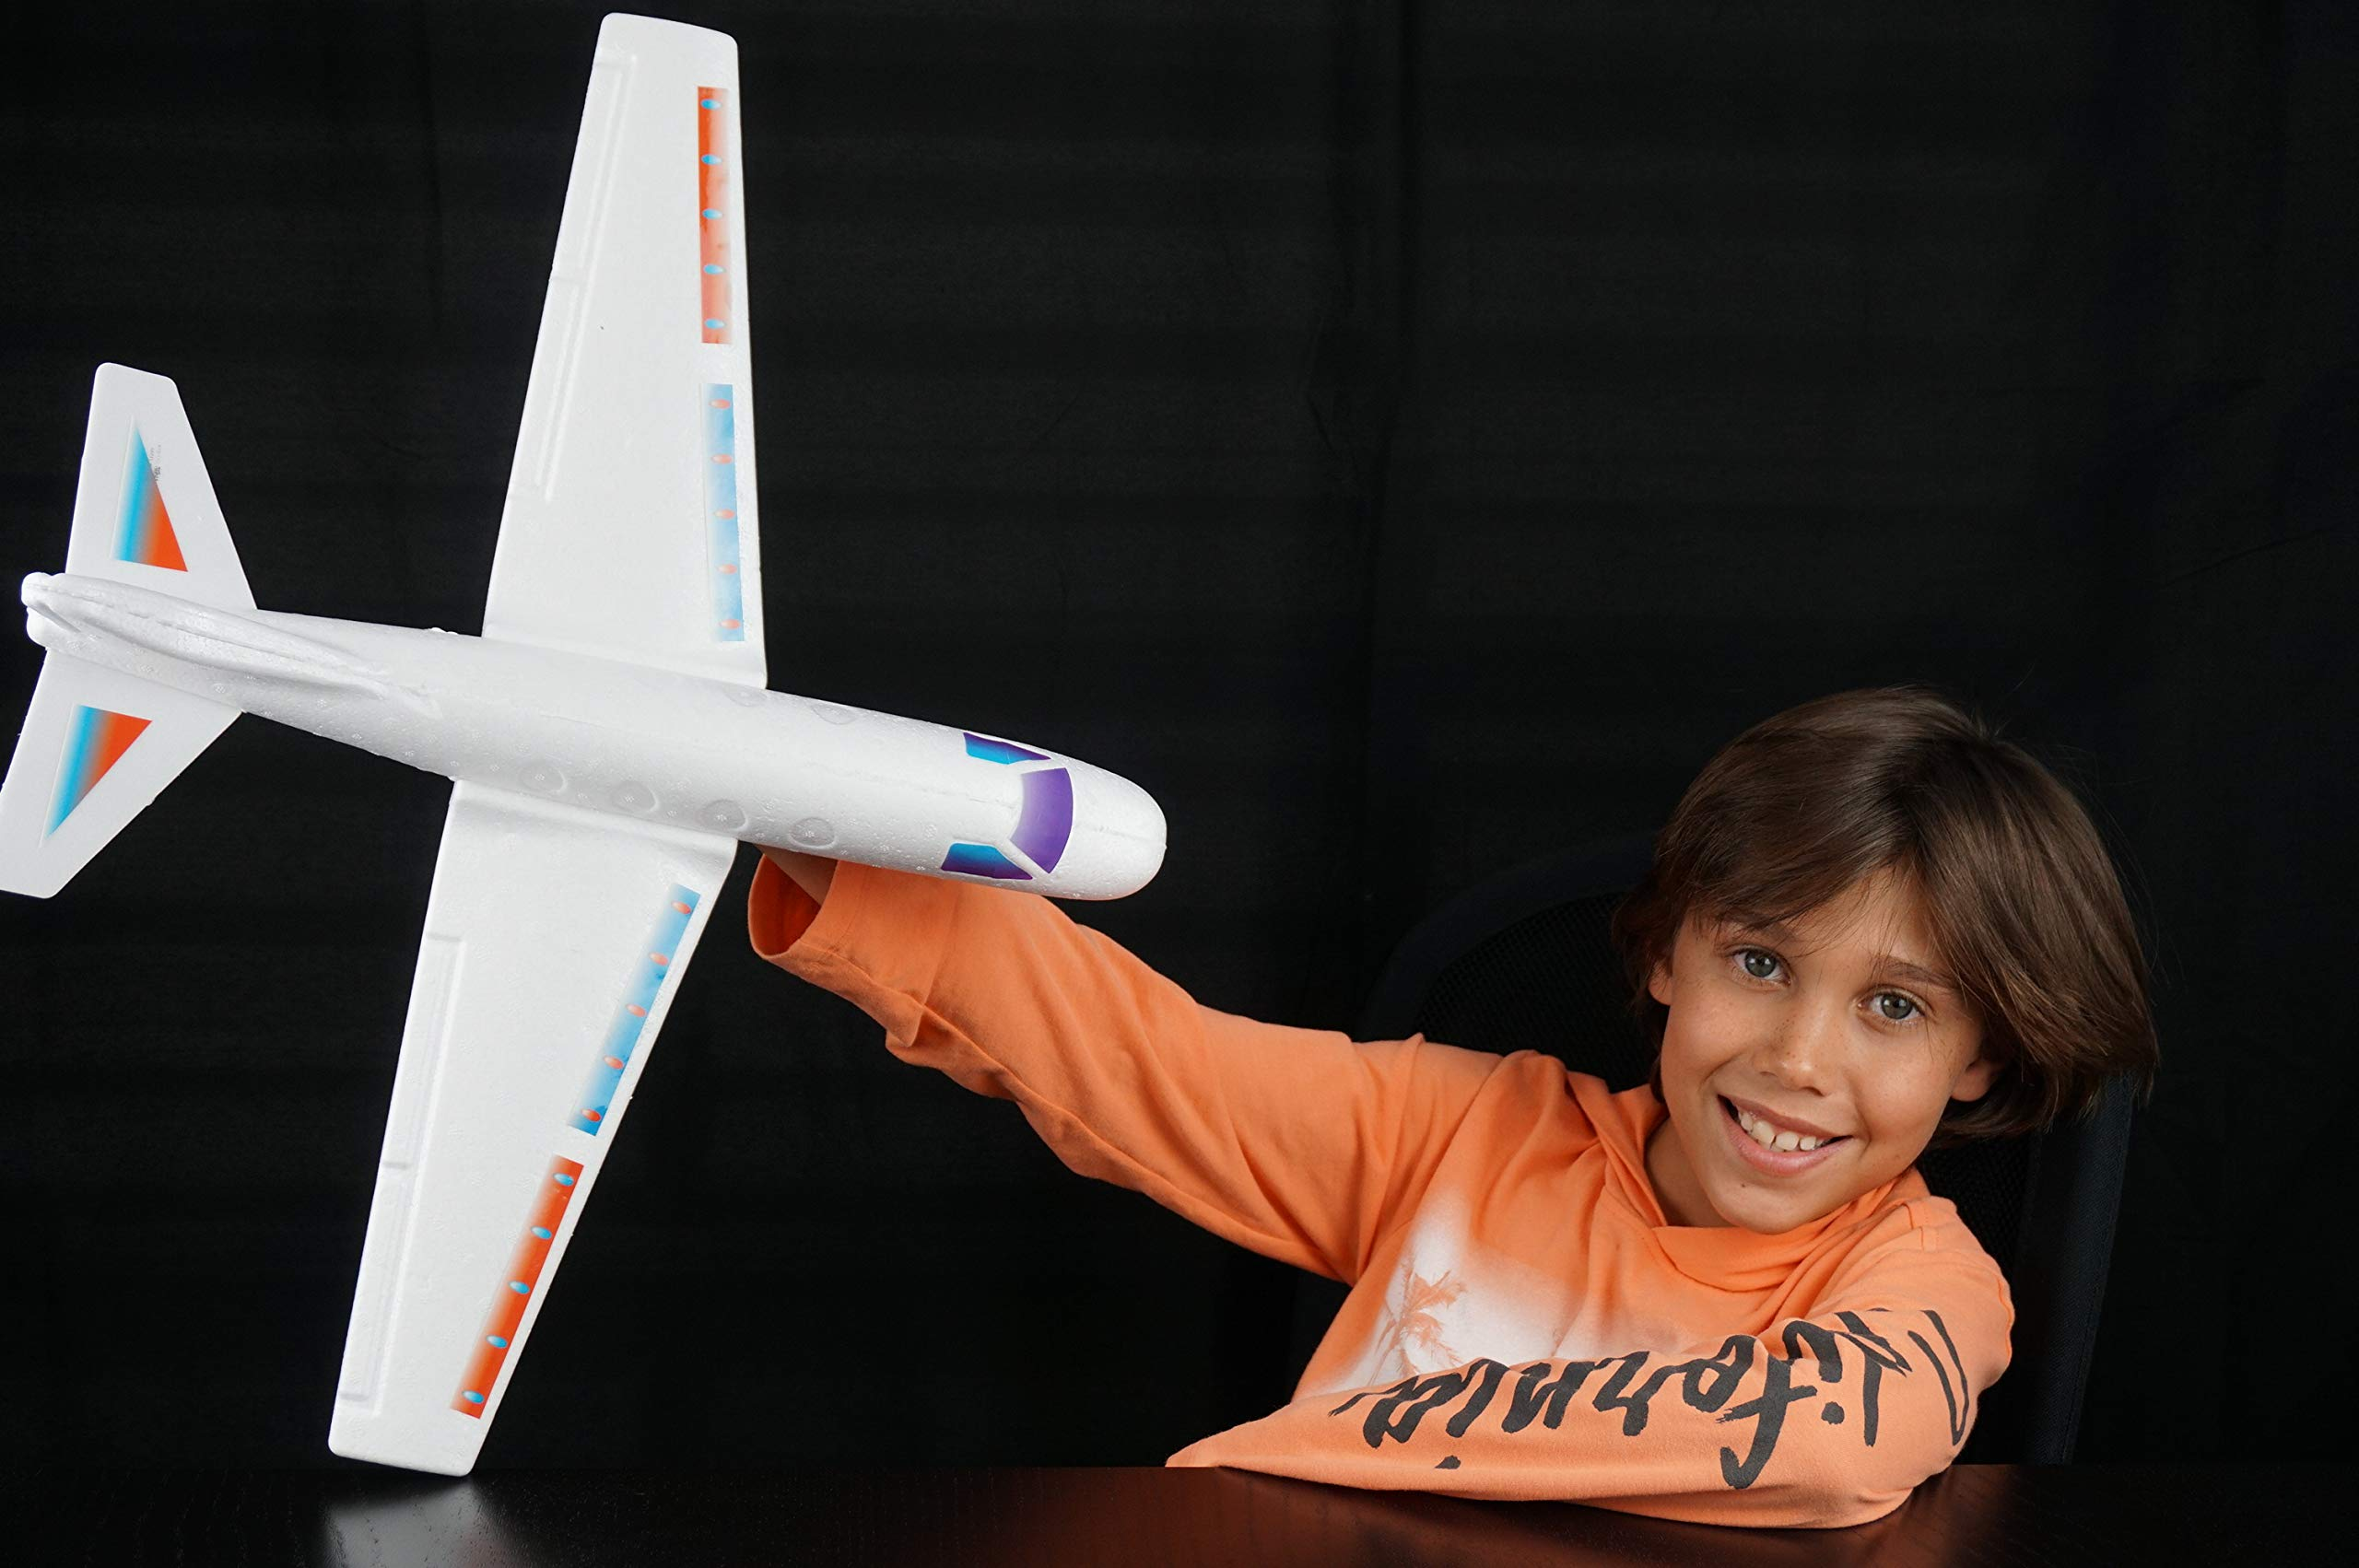 2GoodShop Giant Airplane Glider Kids Fying Toy Build It, Throw It and Watch It Glide Hours of Outdoor Fun Pack of 6 | Item #1030 by 2GoodShop (Image #2)